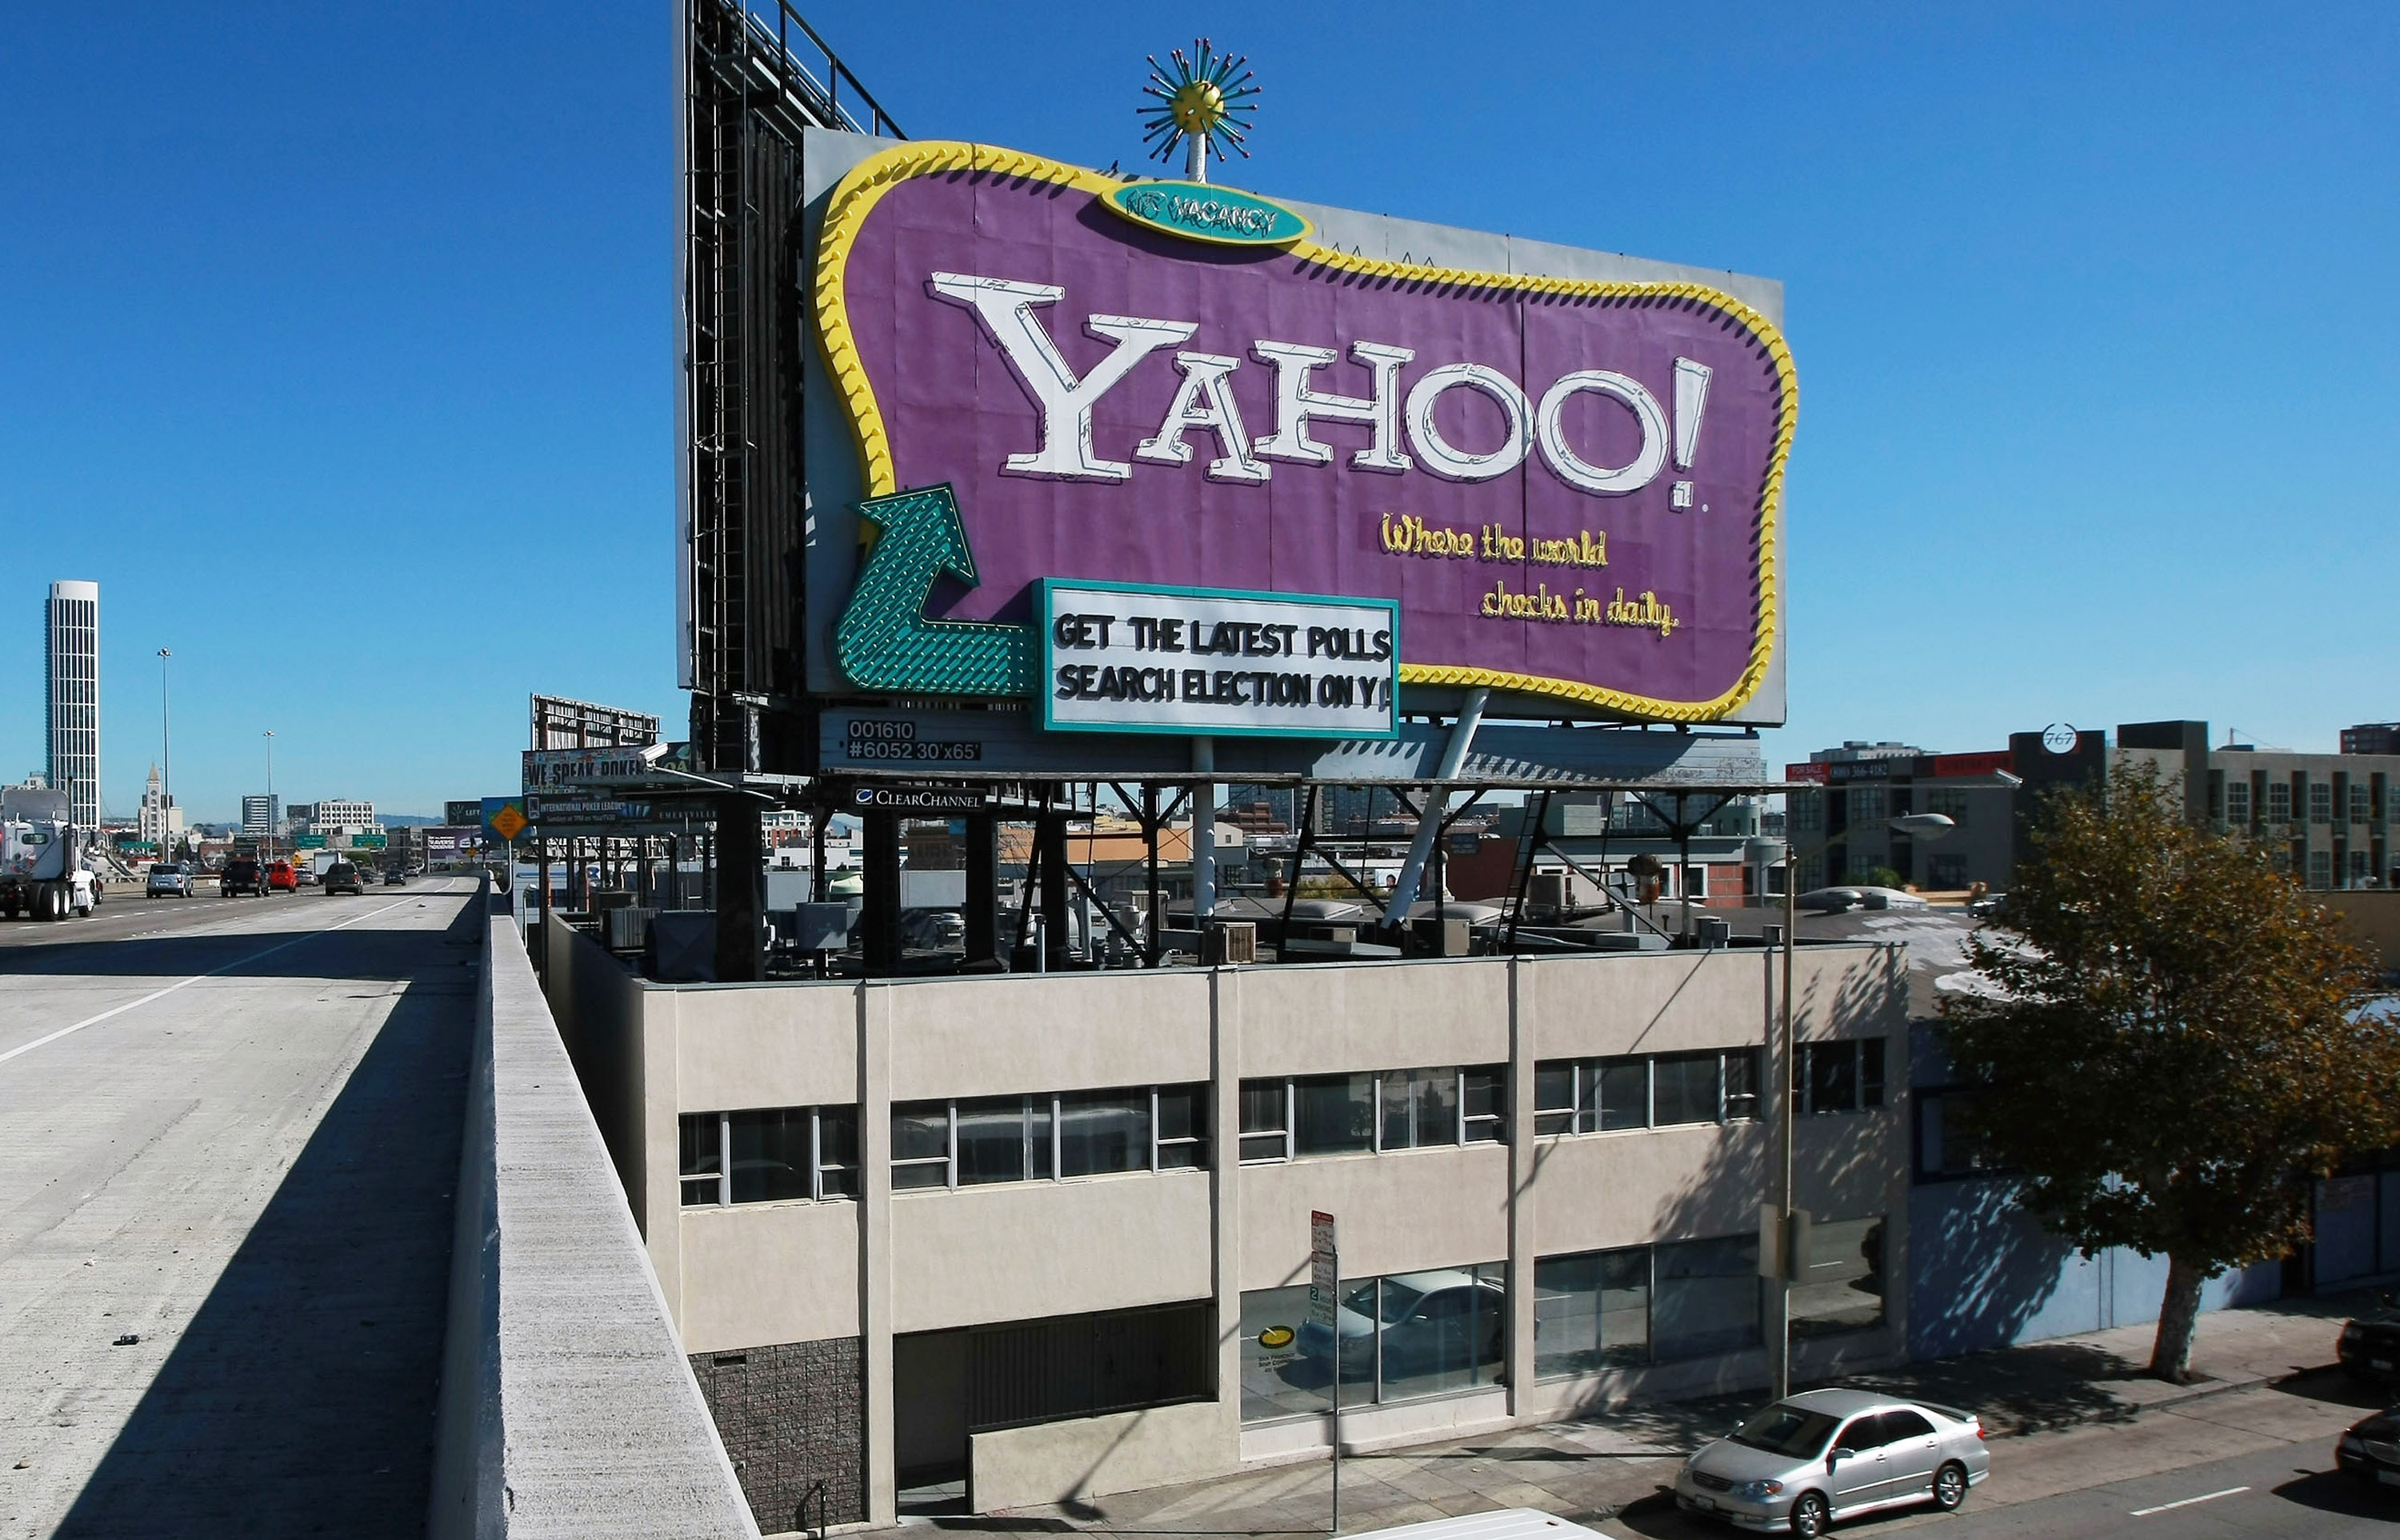 Cars drive by the landmark Yahoo billboard on October 21, 2008, in San Francisco, Calif.